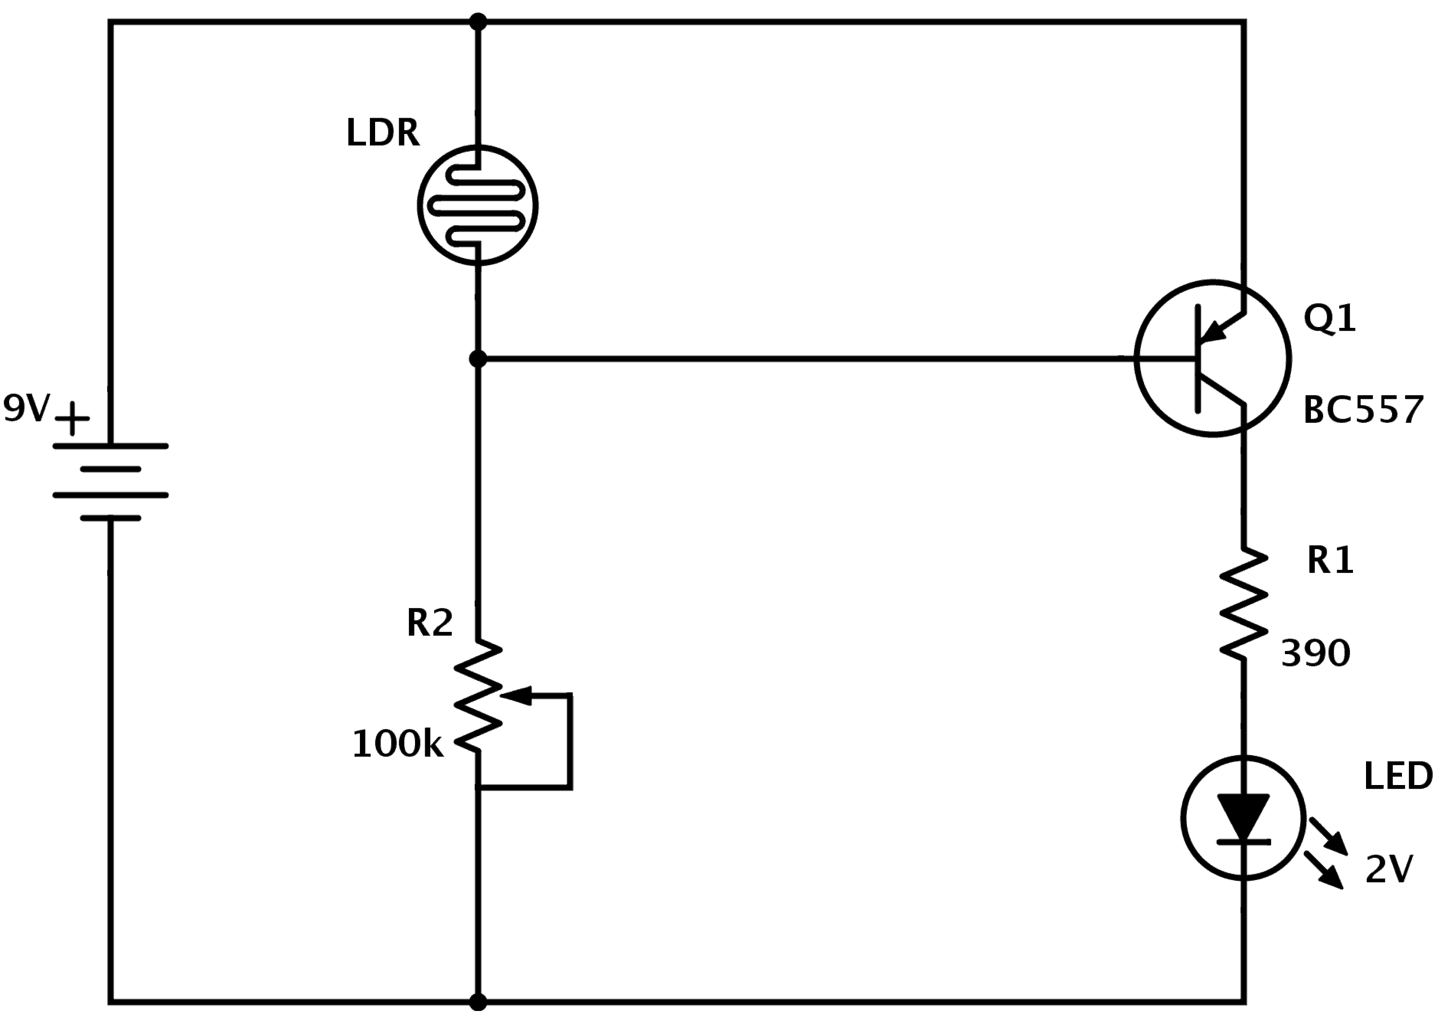 ldr circuit diagram build electronic circuits rh build electronic circuits com circuit diagram lpd8806 circuit diagram drawing tool